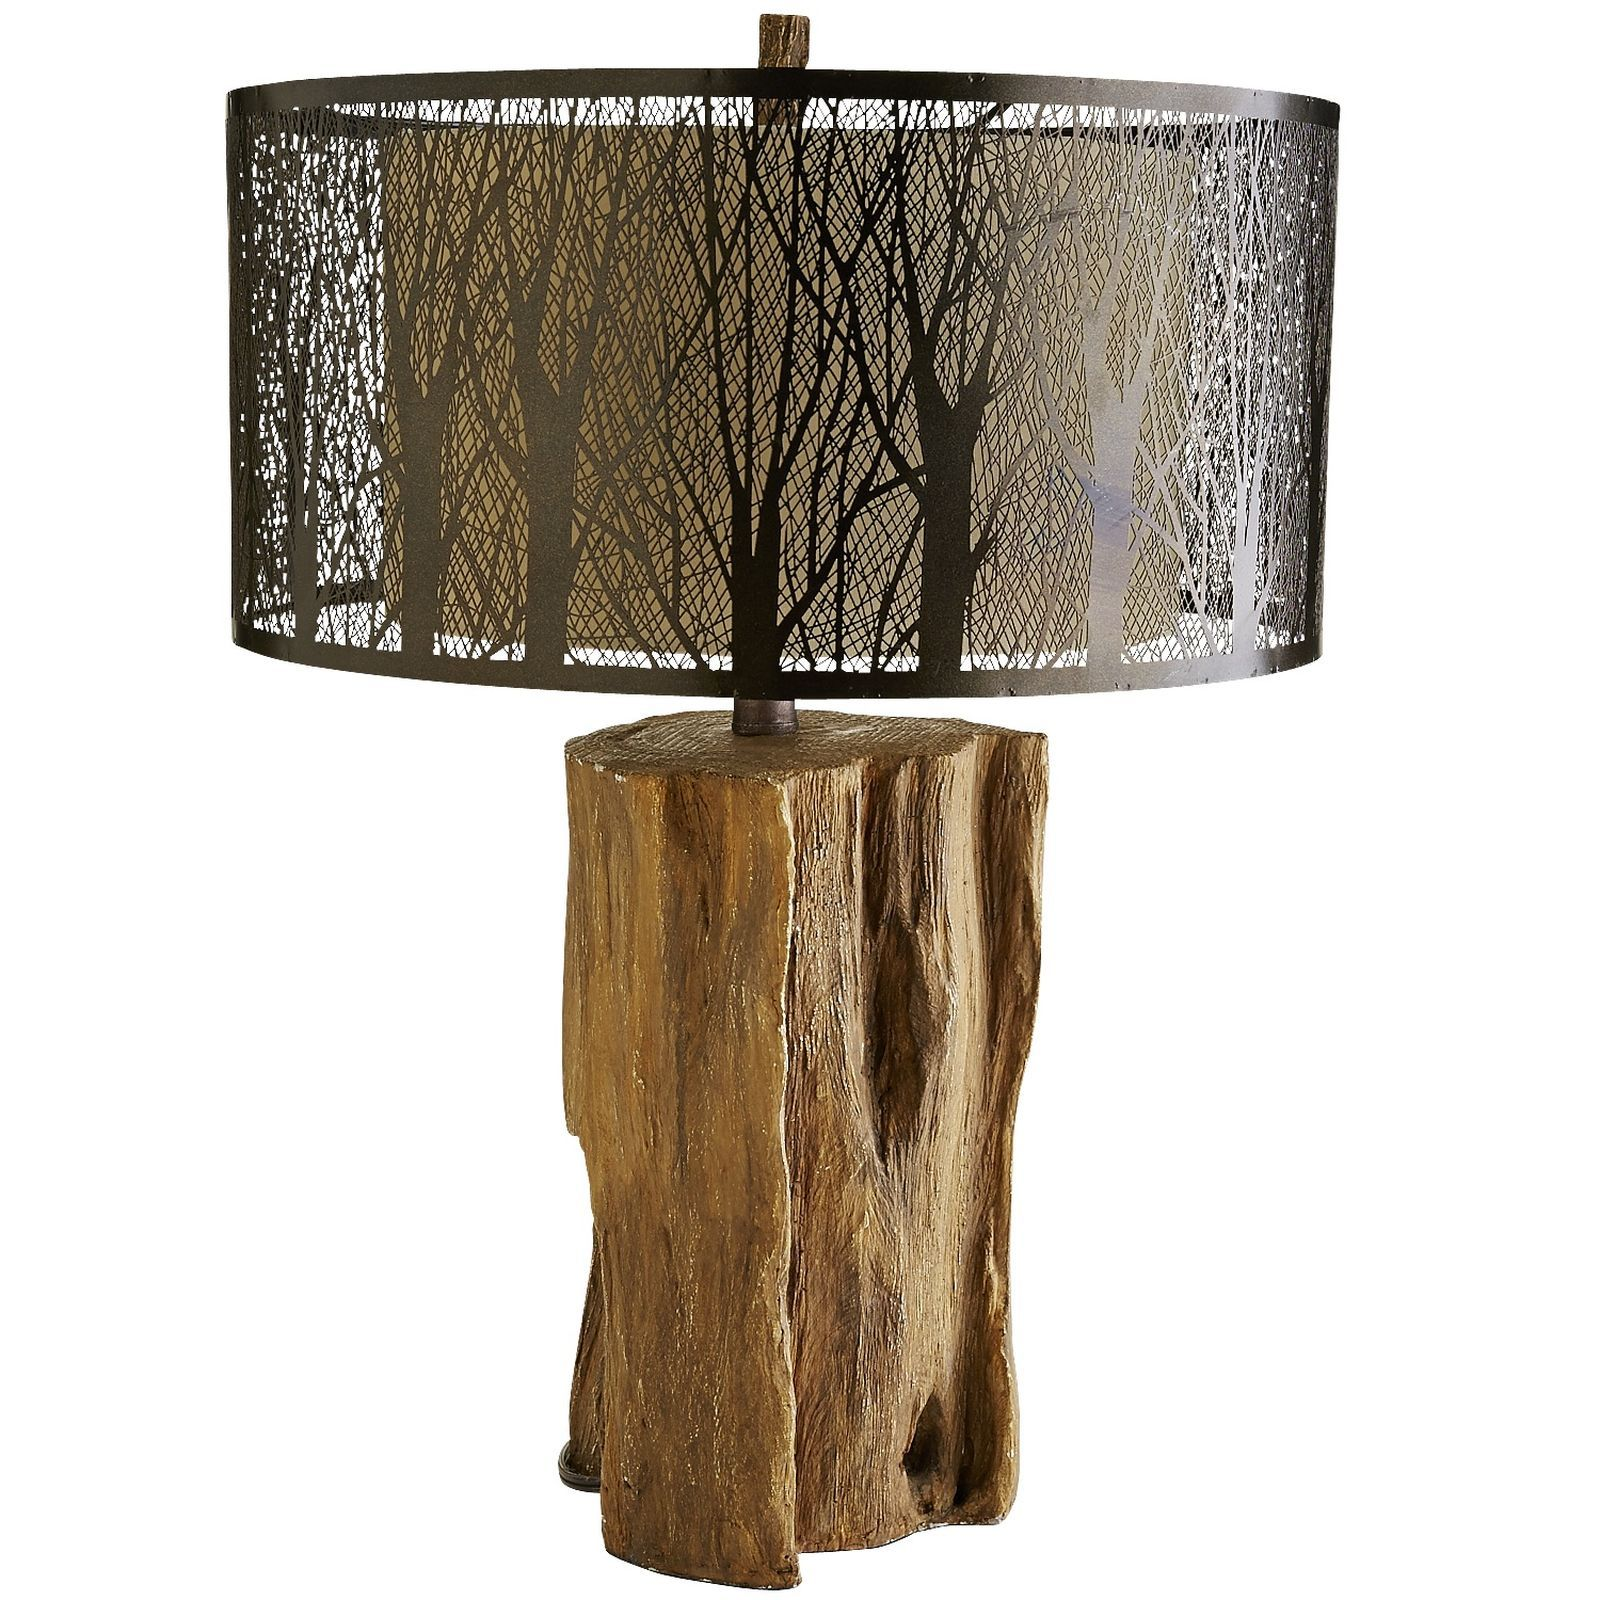 Etched birches table lamp tree trunks birch and serenity etched birches table lamp geotapseo Image collections